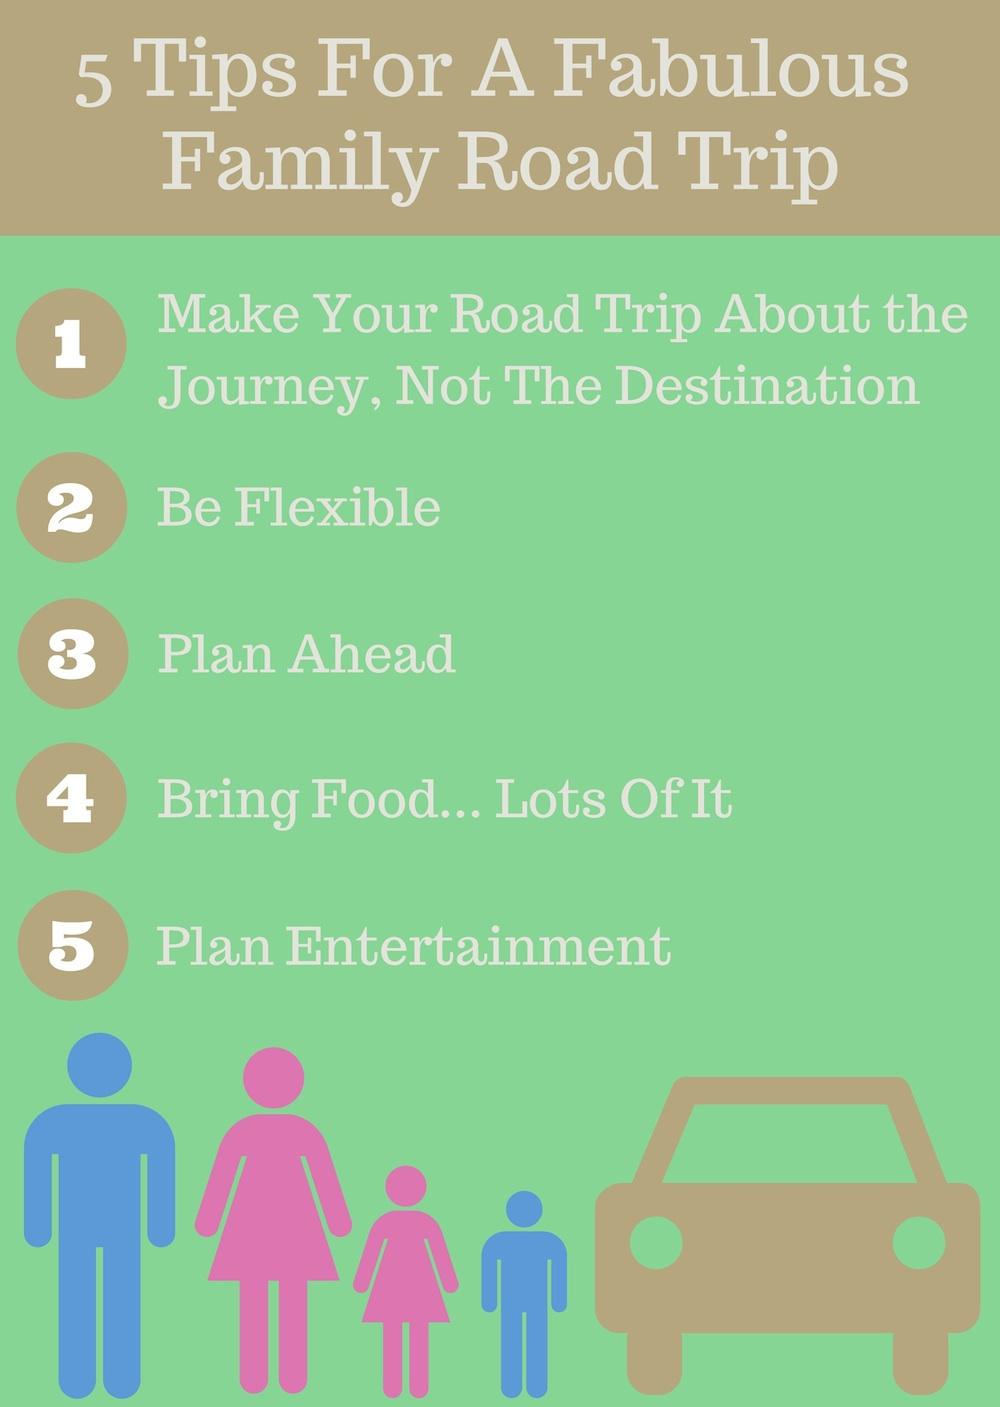 5 Tips for A Fabulous Family Road Trip Infographic from Urban Mommies